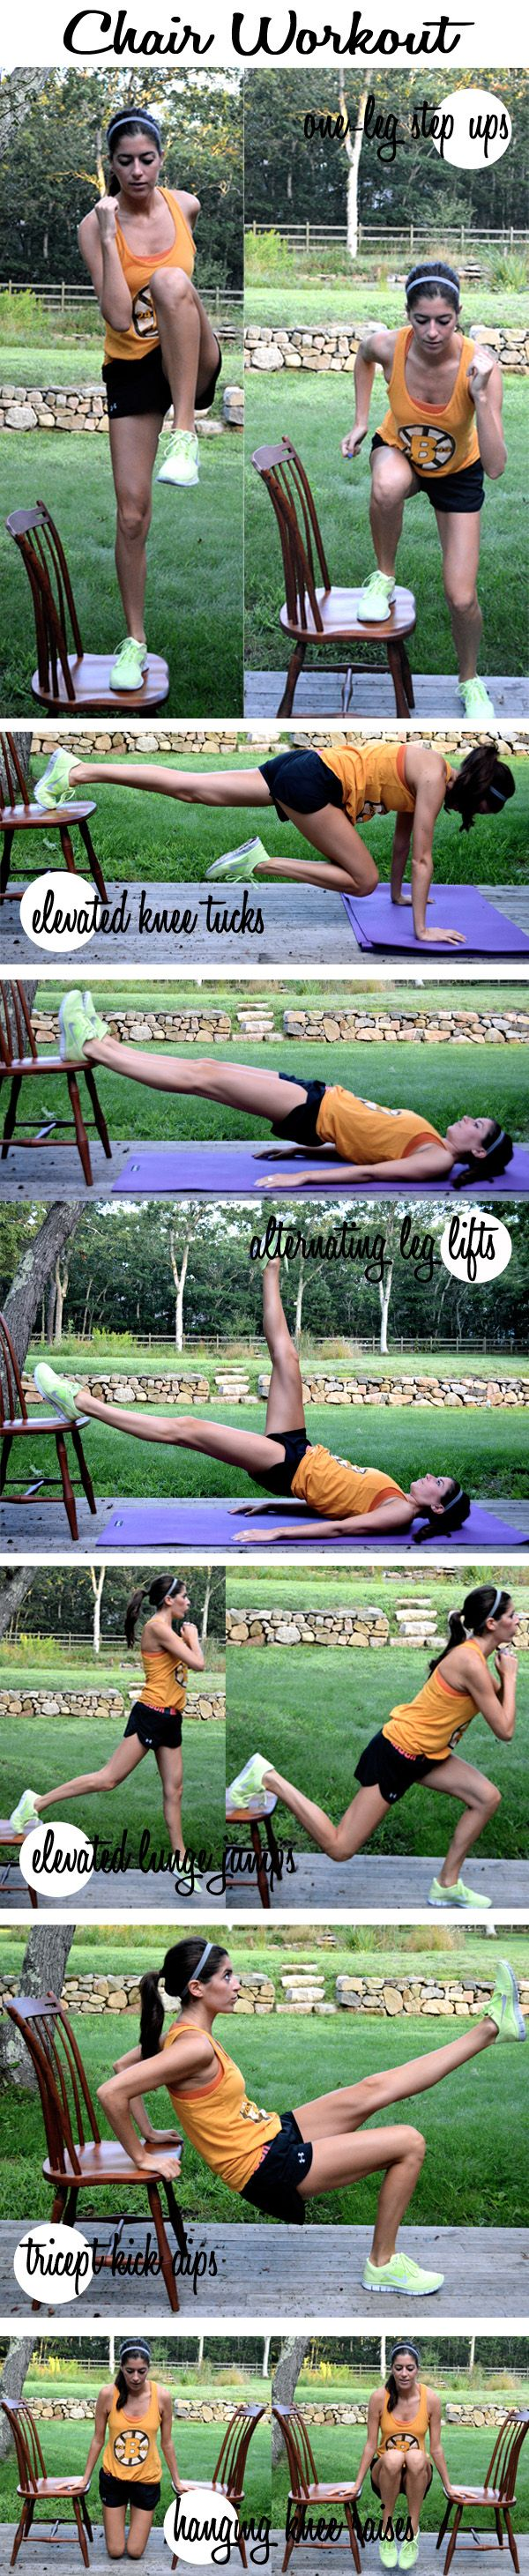 Have a chair? Here's a quick Chair Workout! Get those running legs strong!